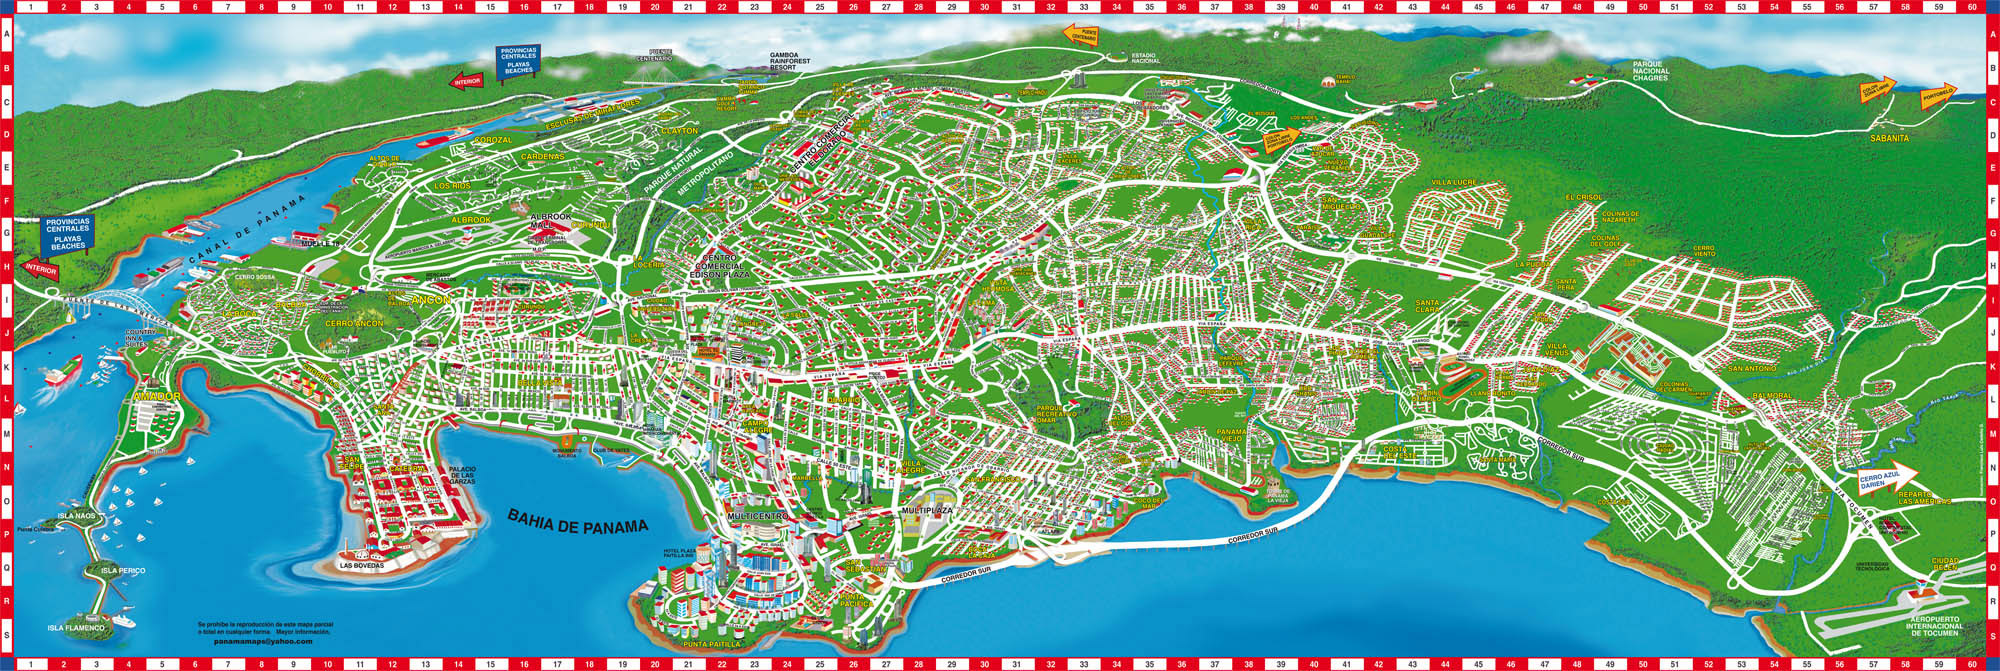 maps update panama city tourist map panama maps mappery